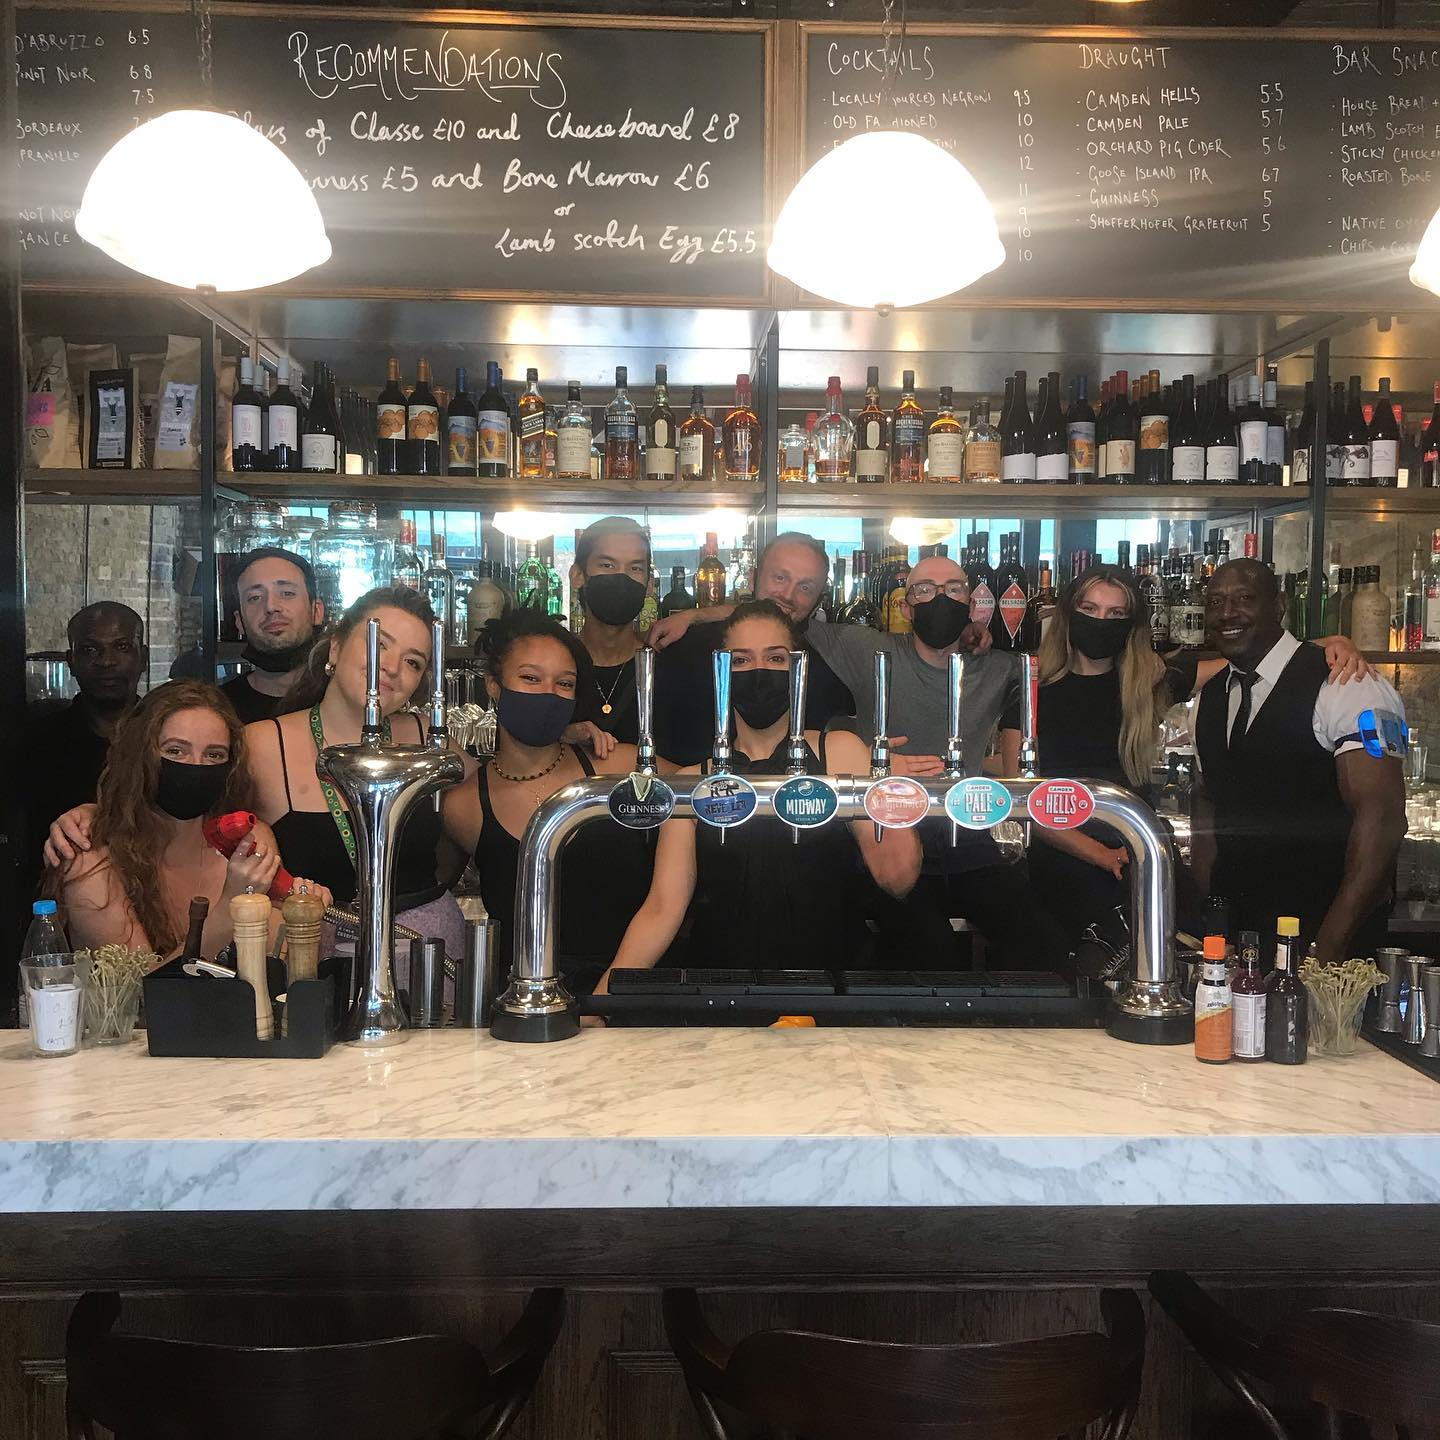 Team Farrier are ready to be serving you as the restrictions lift from Monday - who's ready to prop up our bar ? 🍻